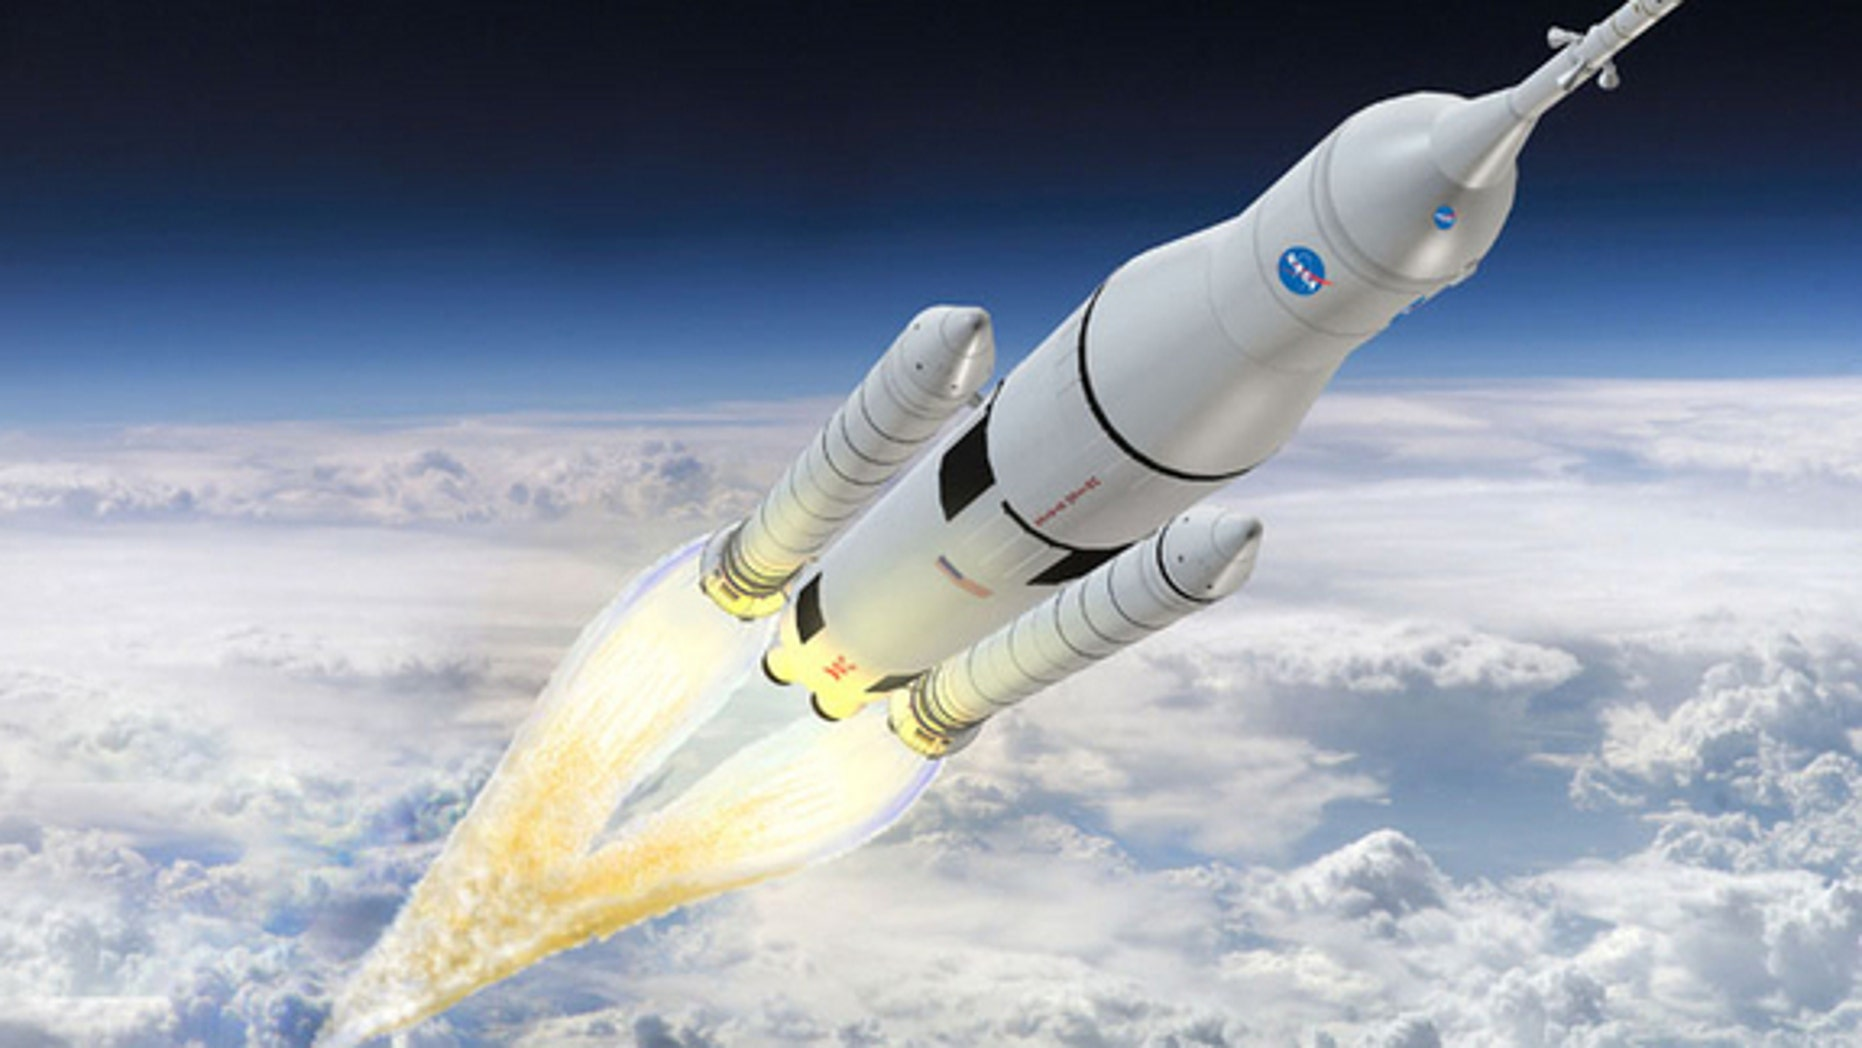 An artist's rendering of NASA's Space Launch System (SLS). Boeing is the prime contractor responsible for the SLS cryogenic stages and avionics.